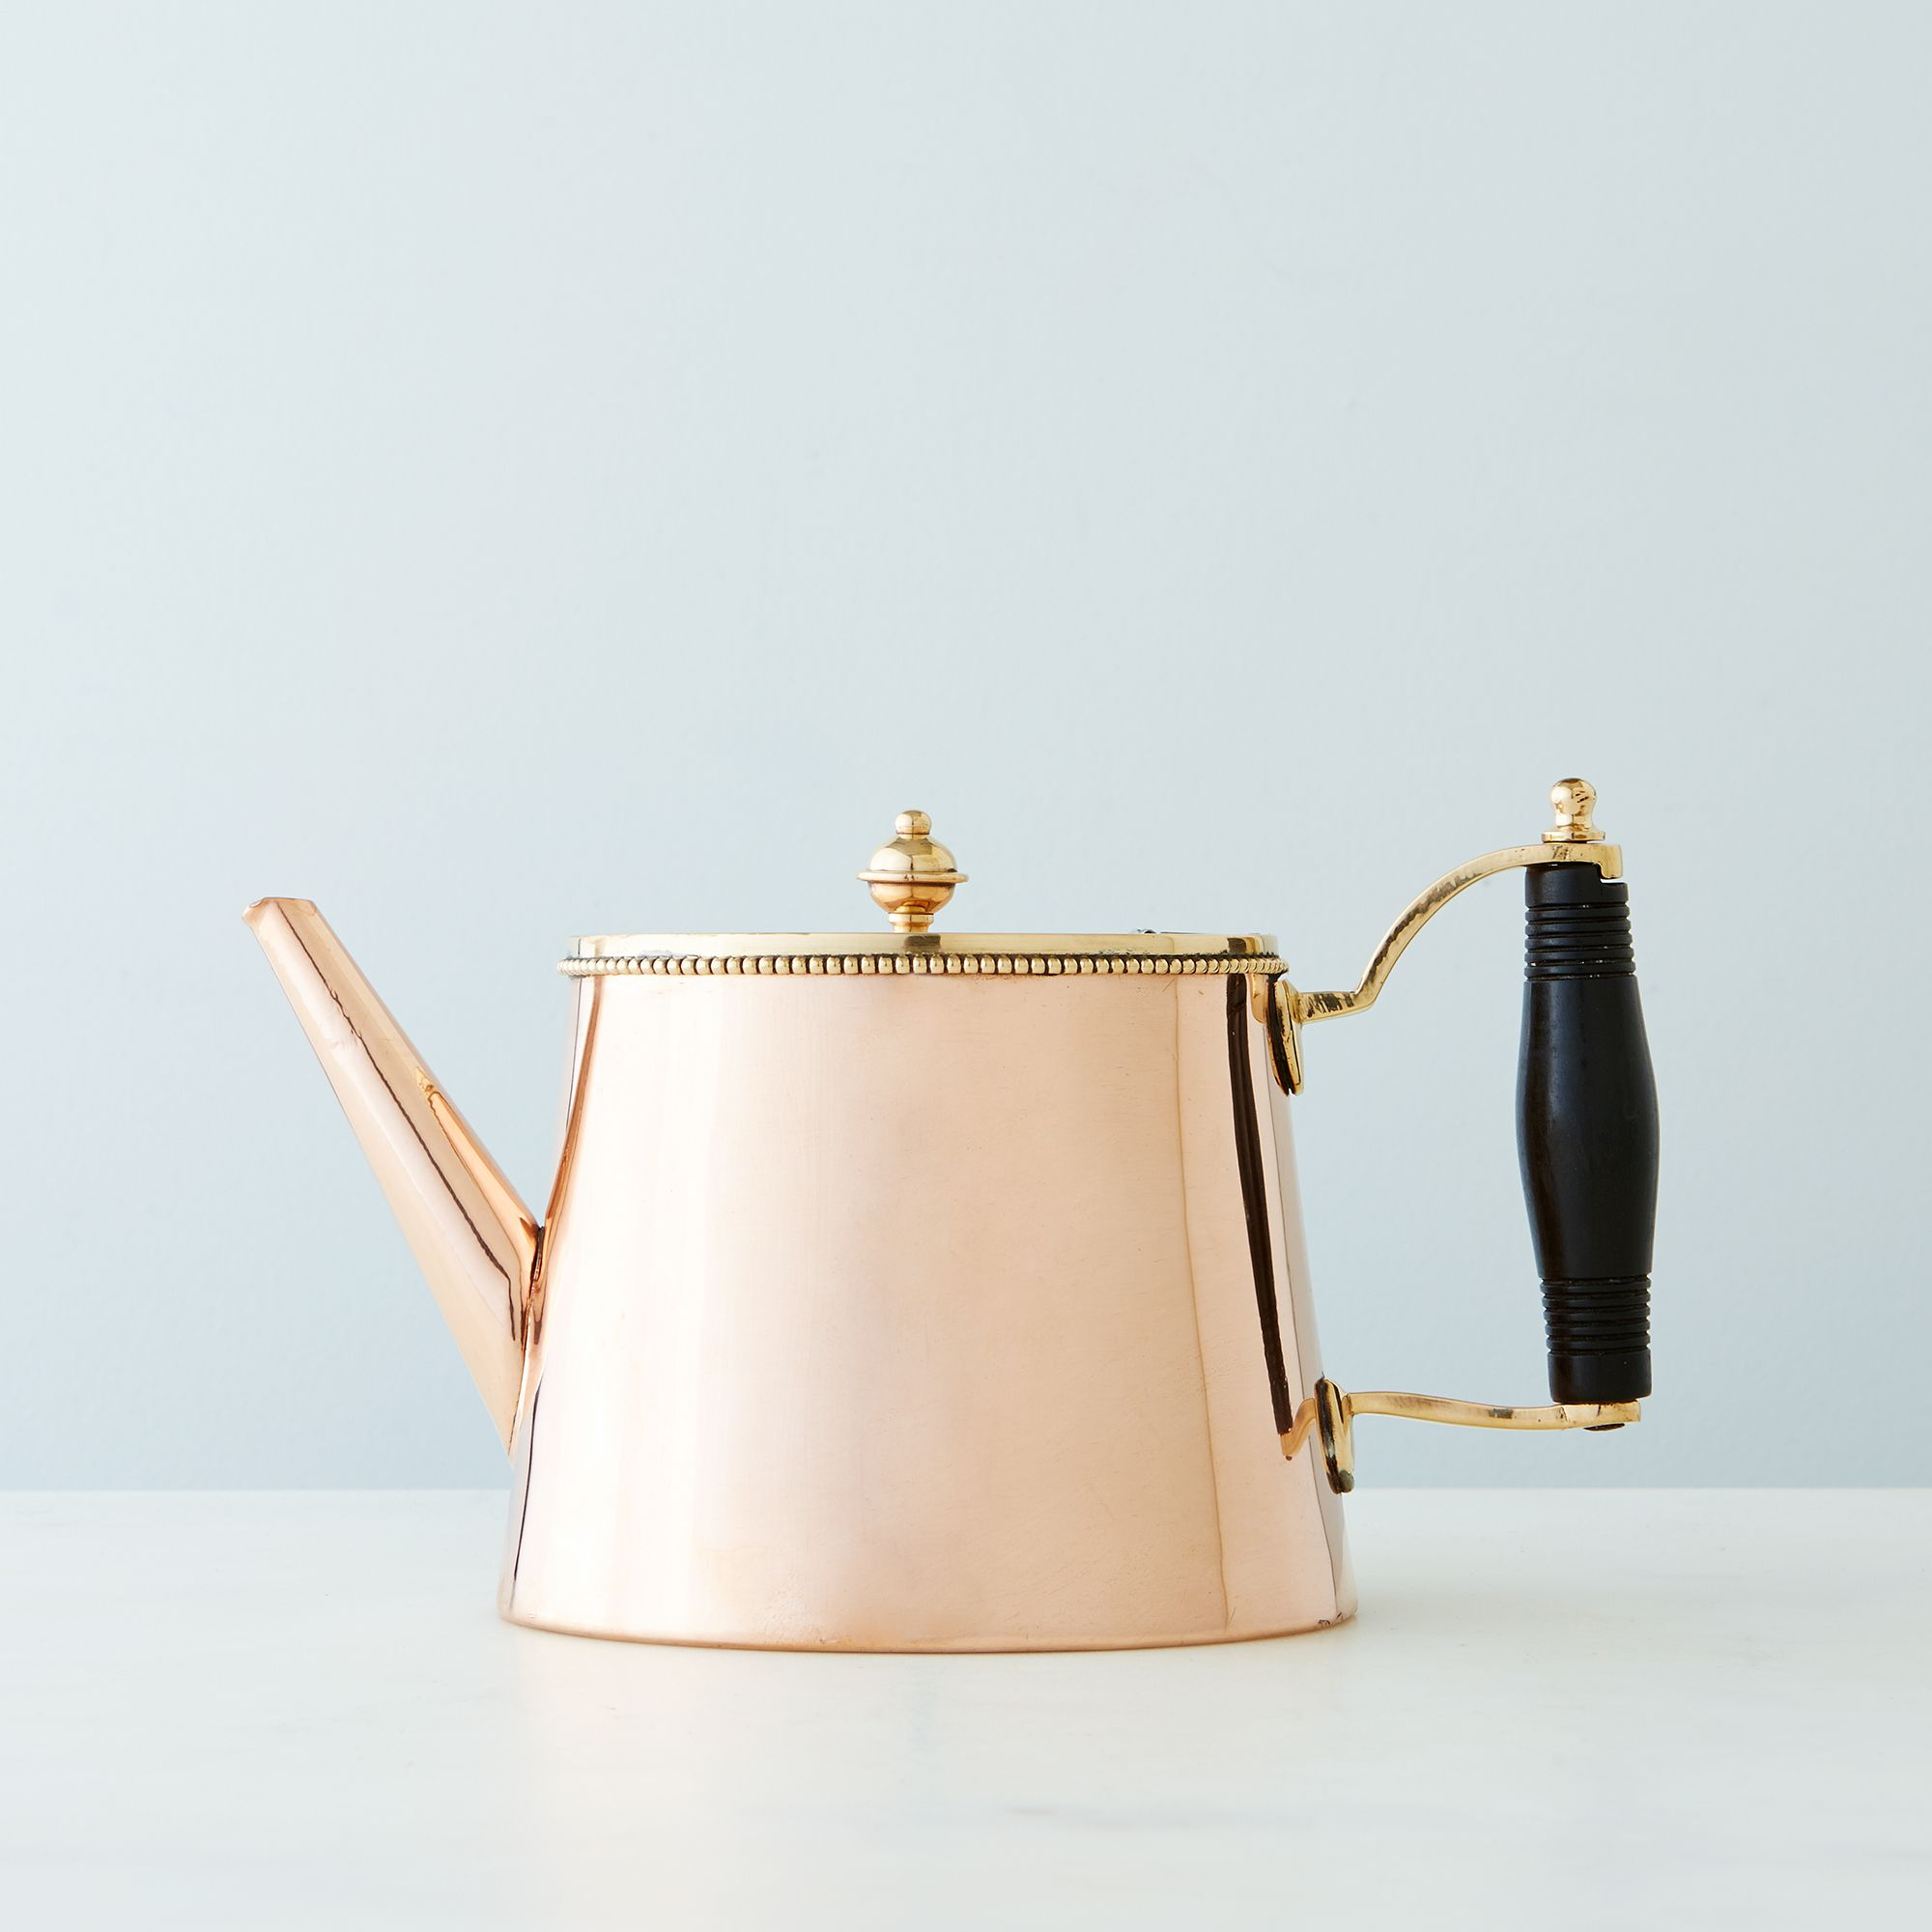 Vintage Copper Tea Pot with Ebony Handle, Early 19th Century on Food52